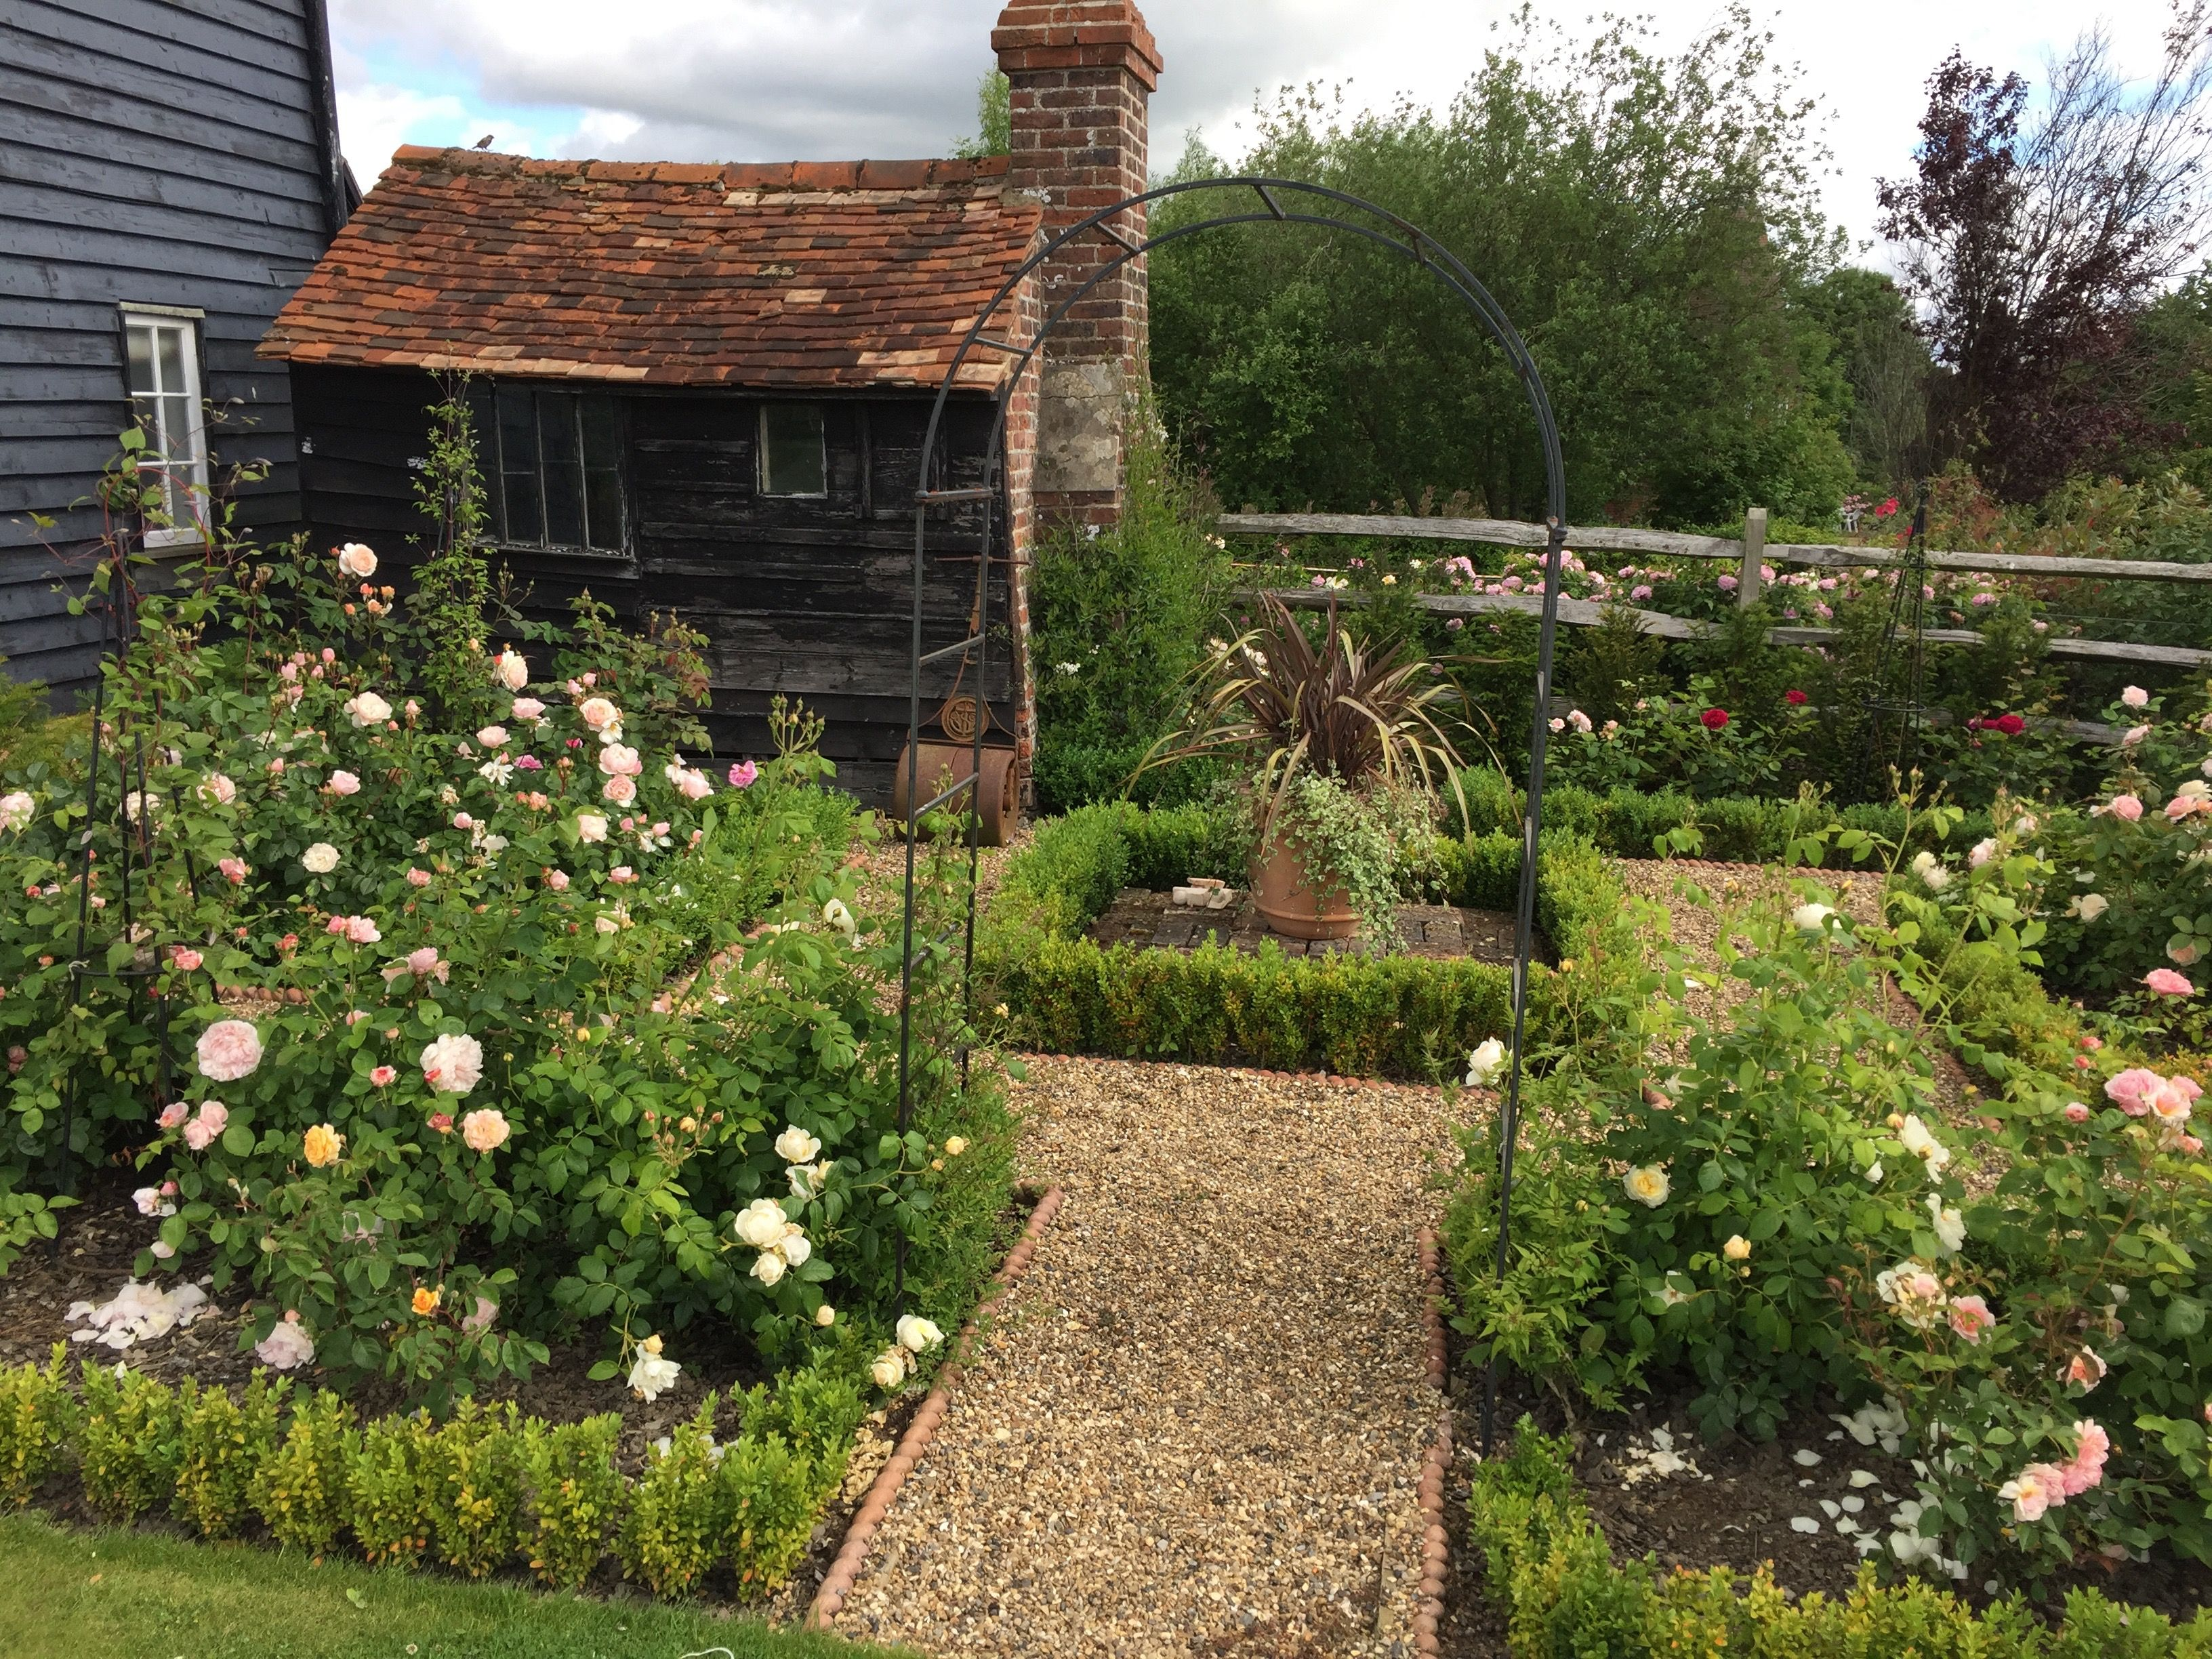 The Soup Kitchen garden which has been planted up with David Austin ...